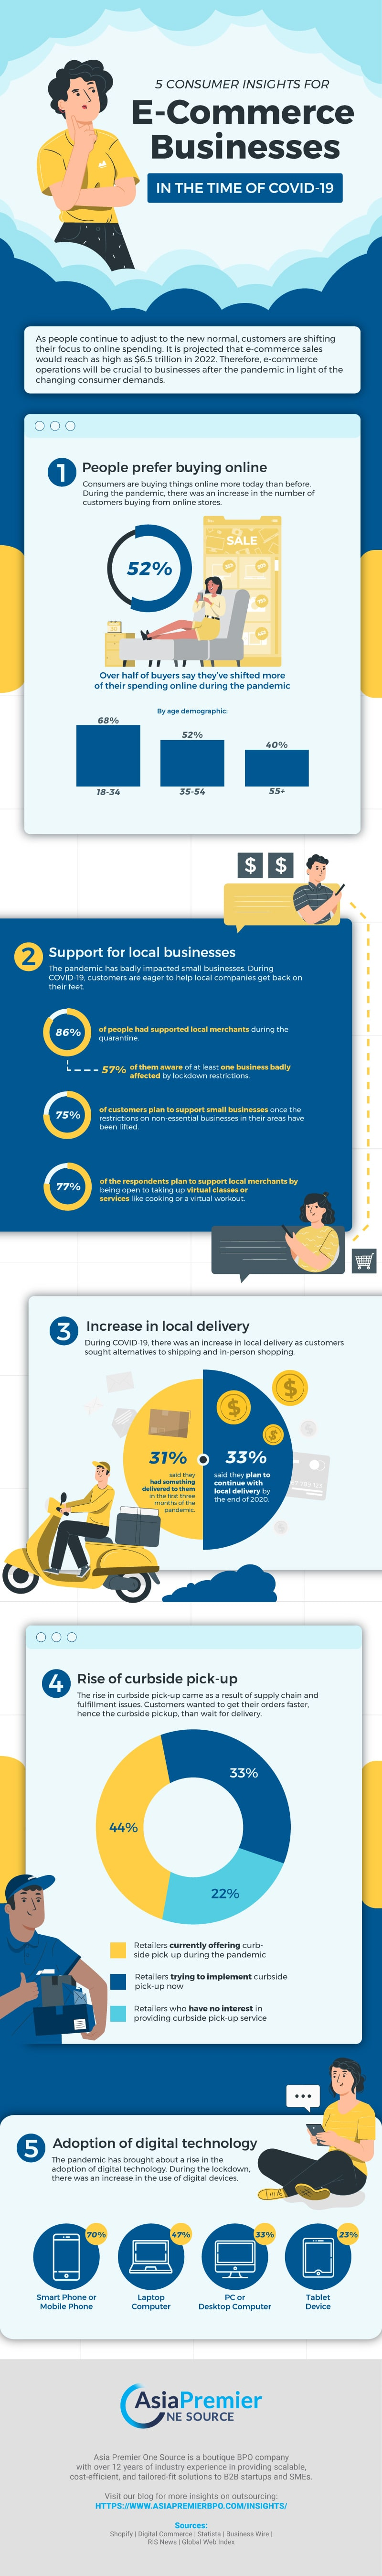 5 Consumer Insights for E-Commerce Businesses in the Time of COVID-19